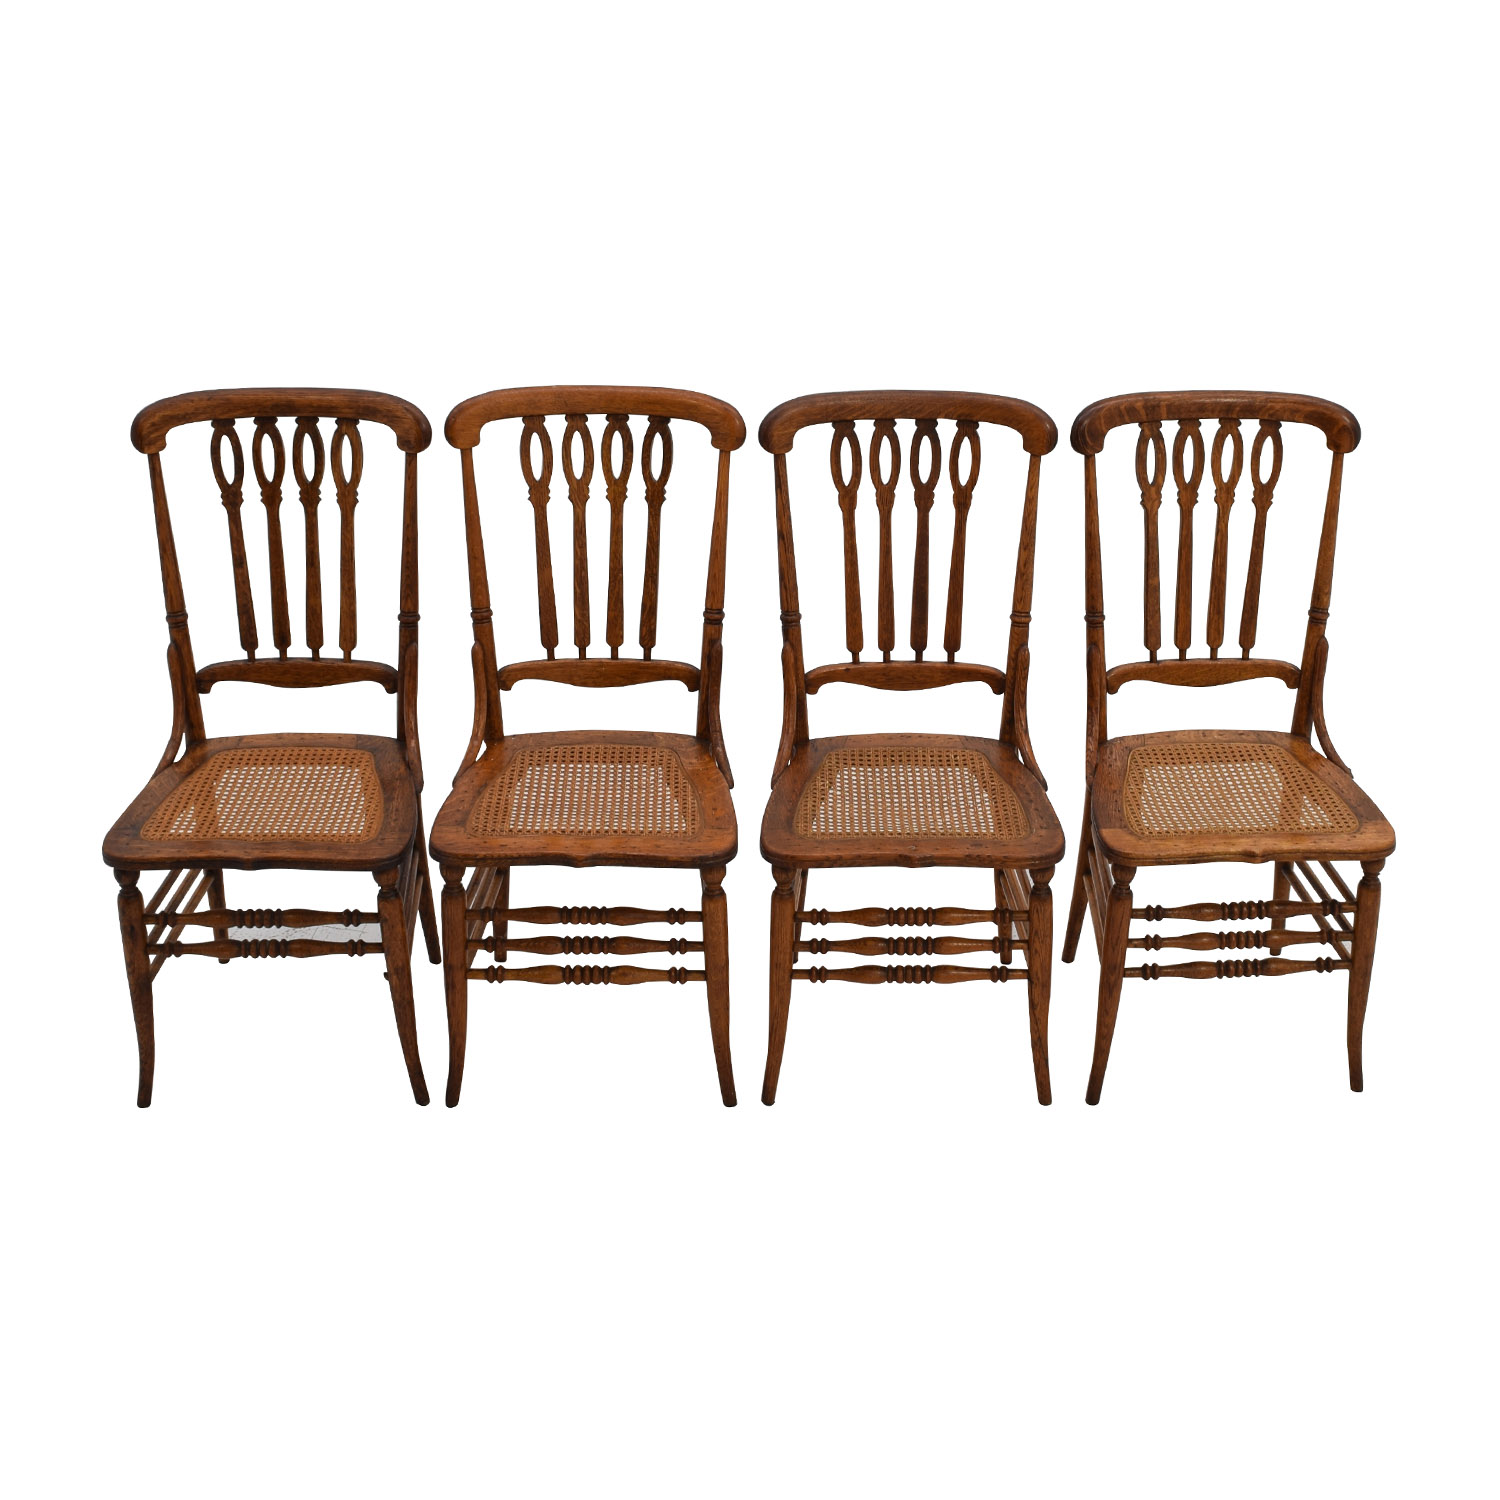 cane dining chairs for sale hammock swing chair australia used